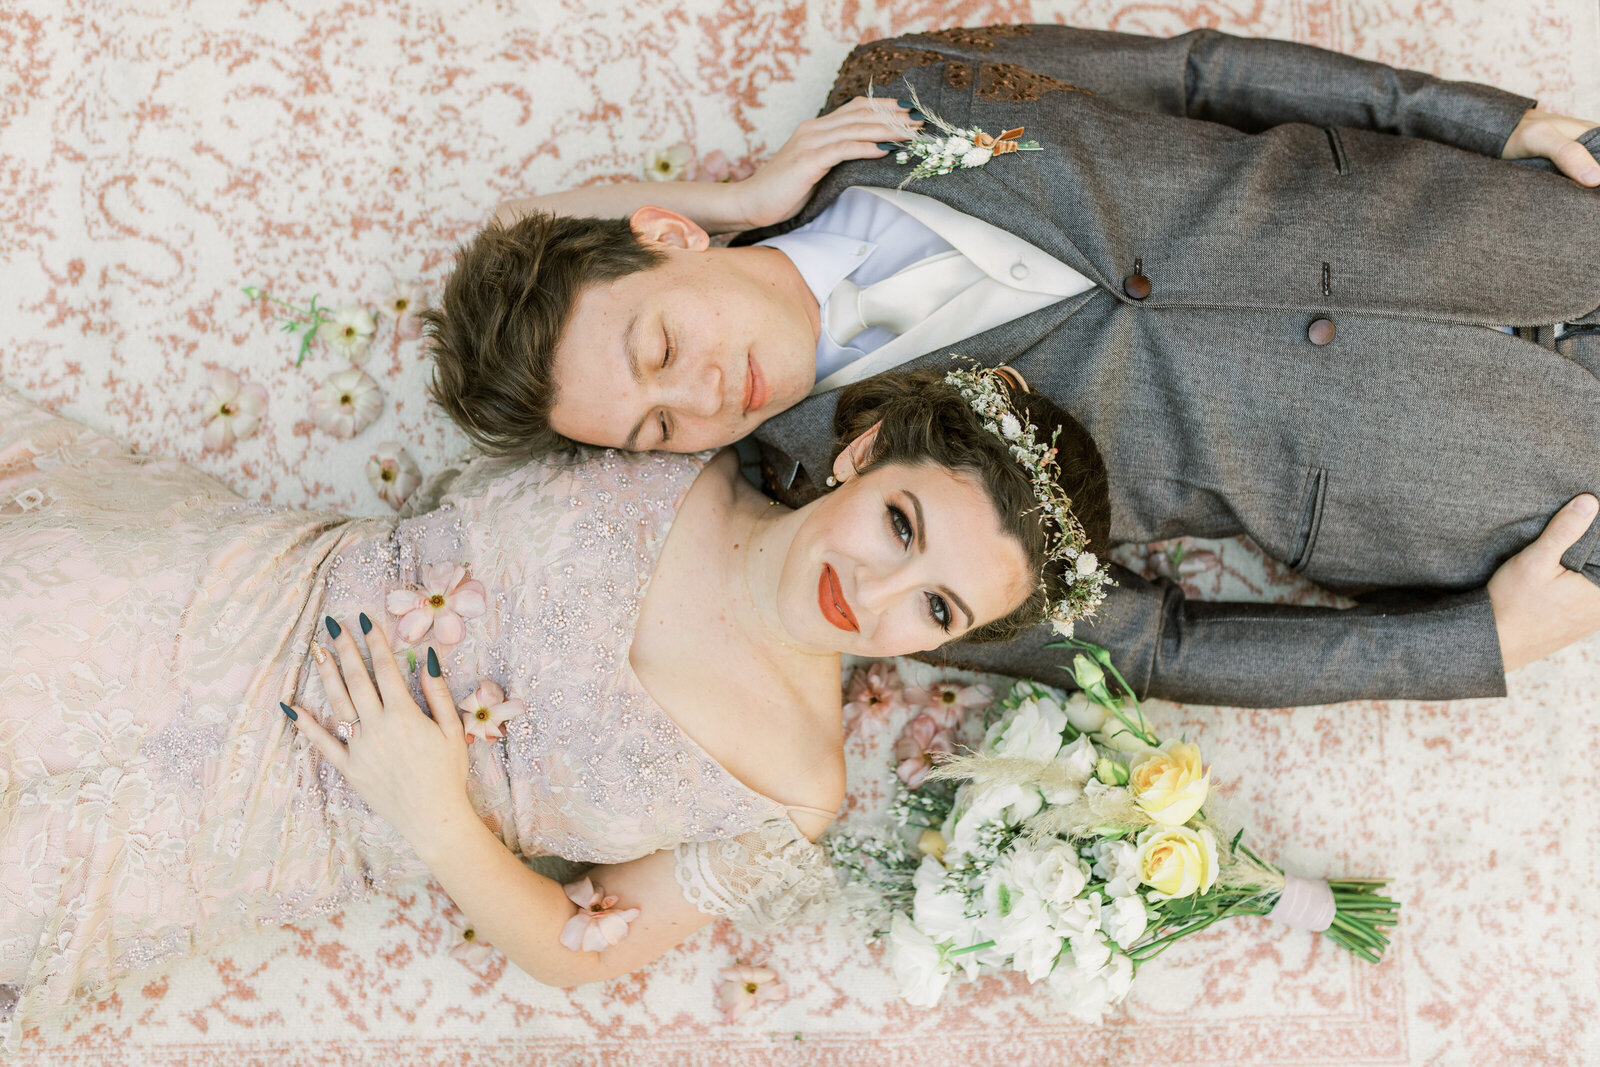 Bride & Groom laying near each other